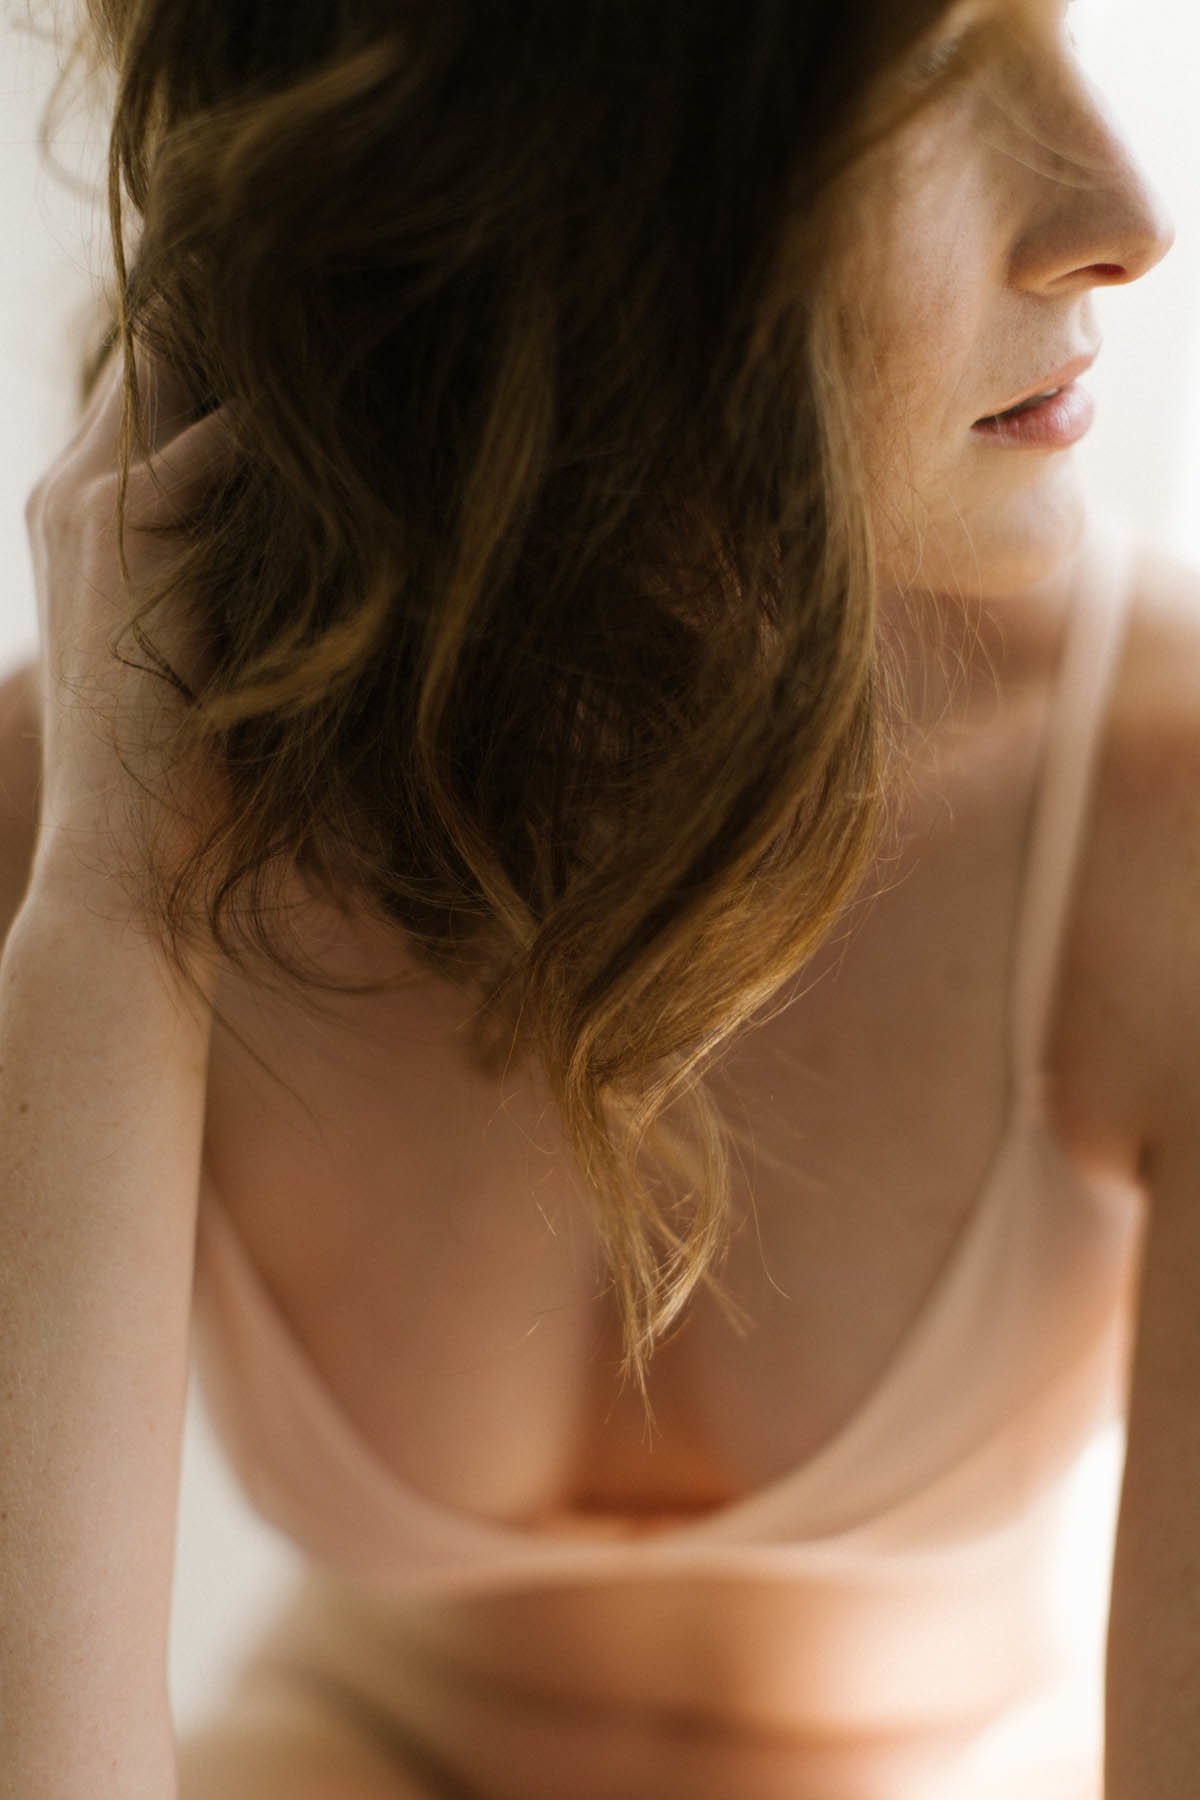 Woman with peach lingerie during boudoir session